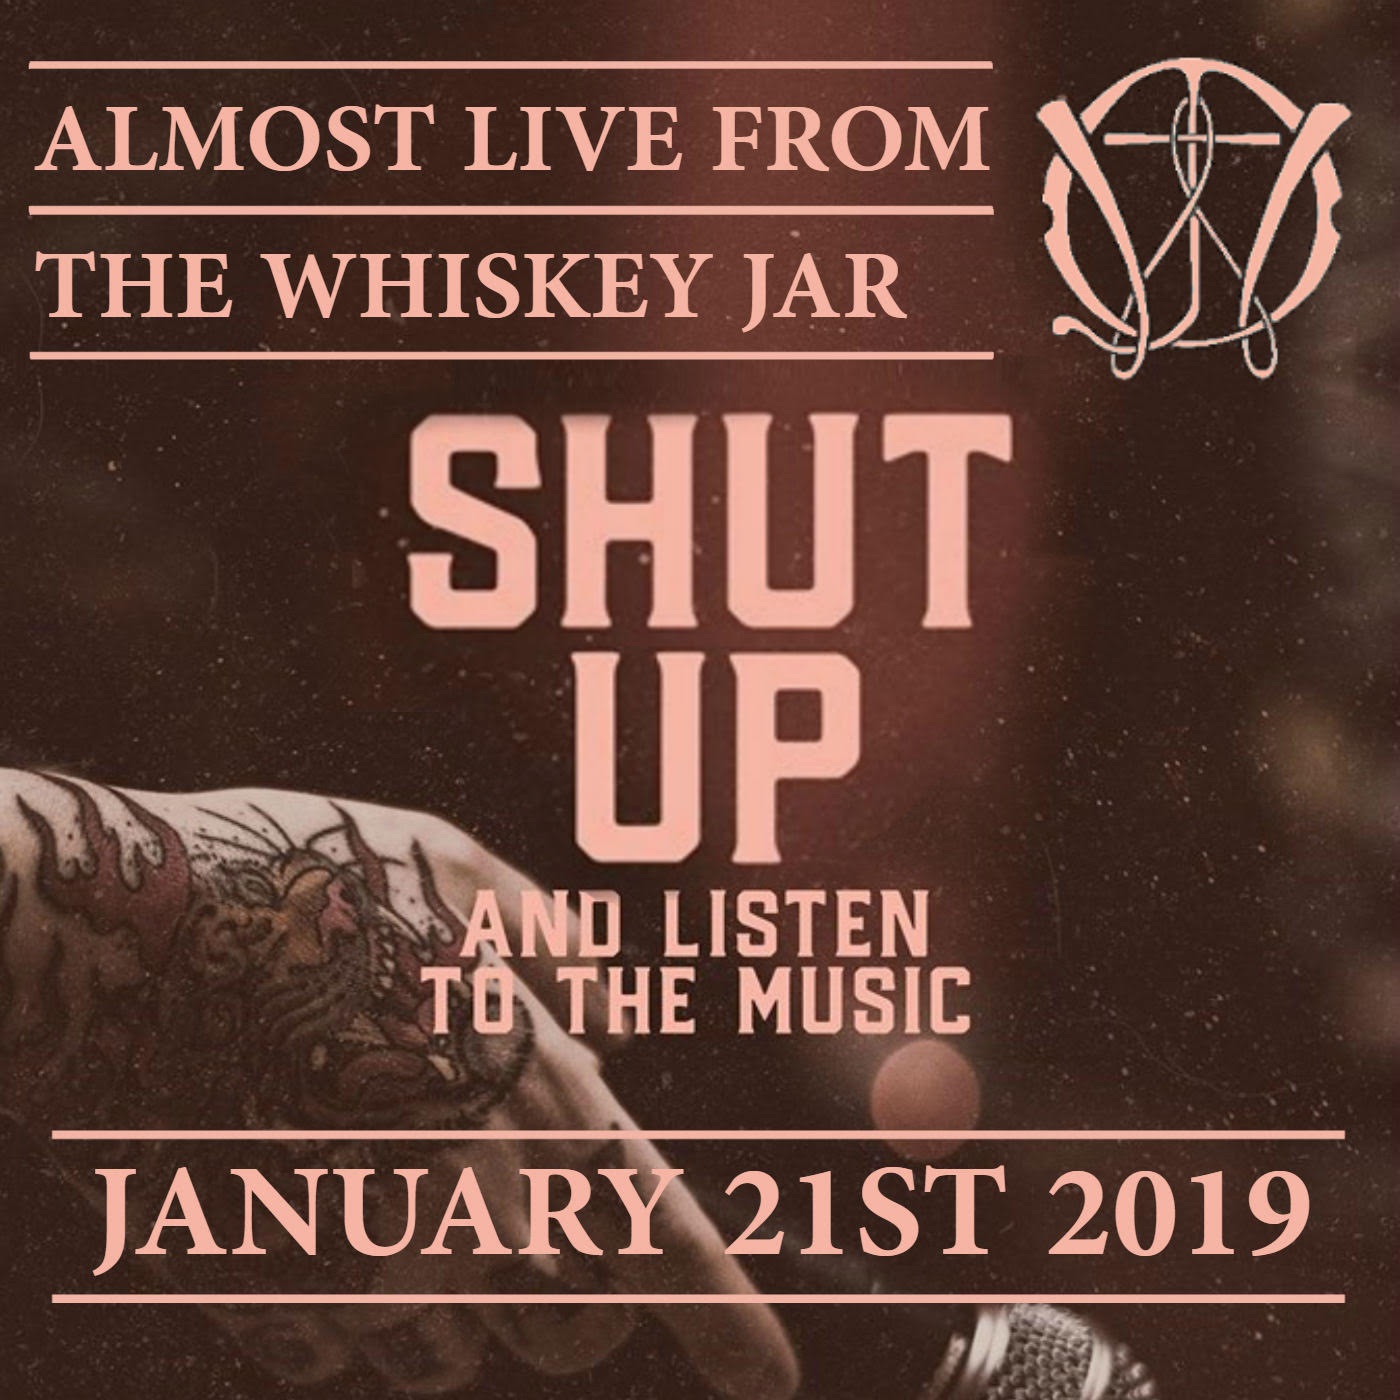 Almost Live From the Whiskey Jar - January 21st 2020 (episode 58)